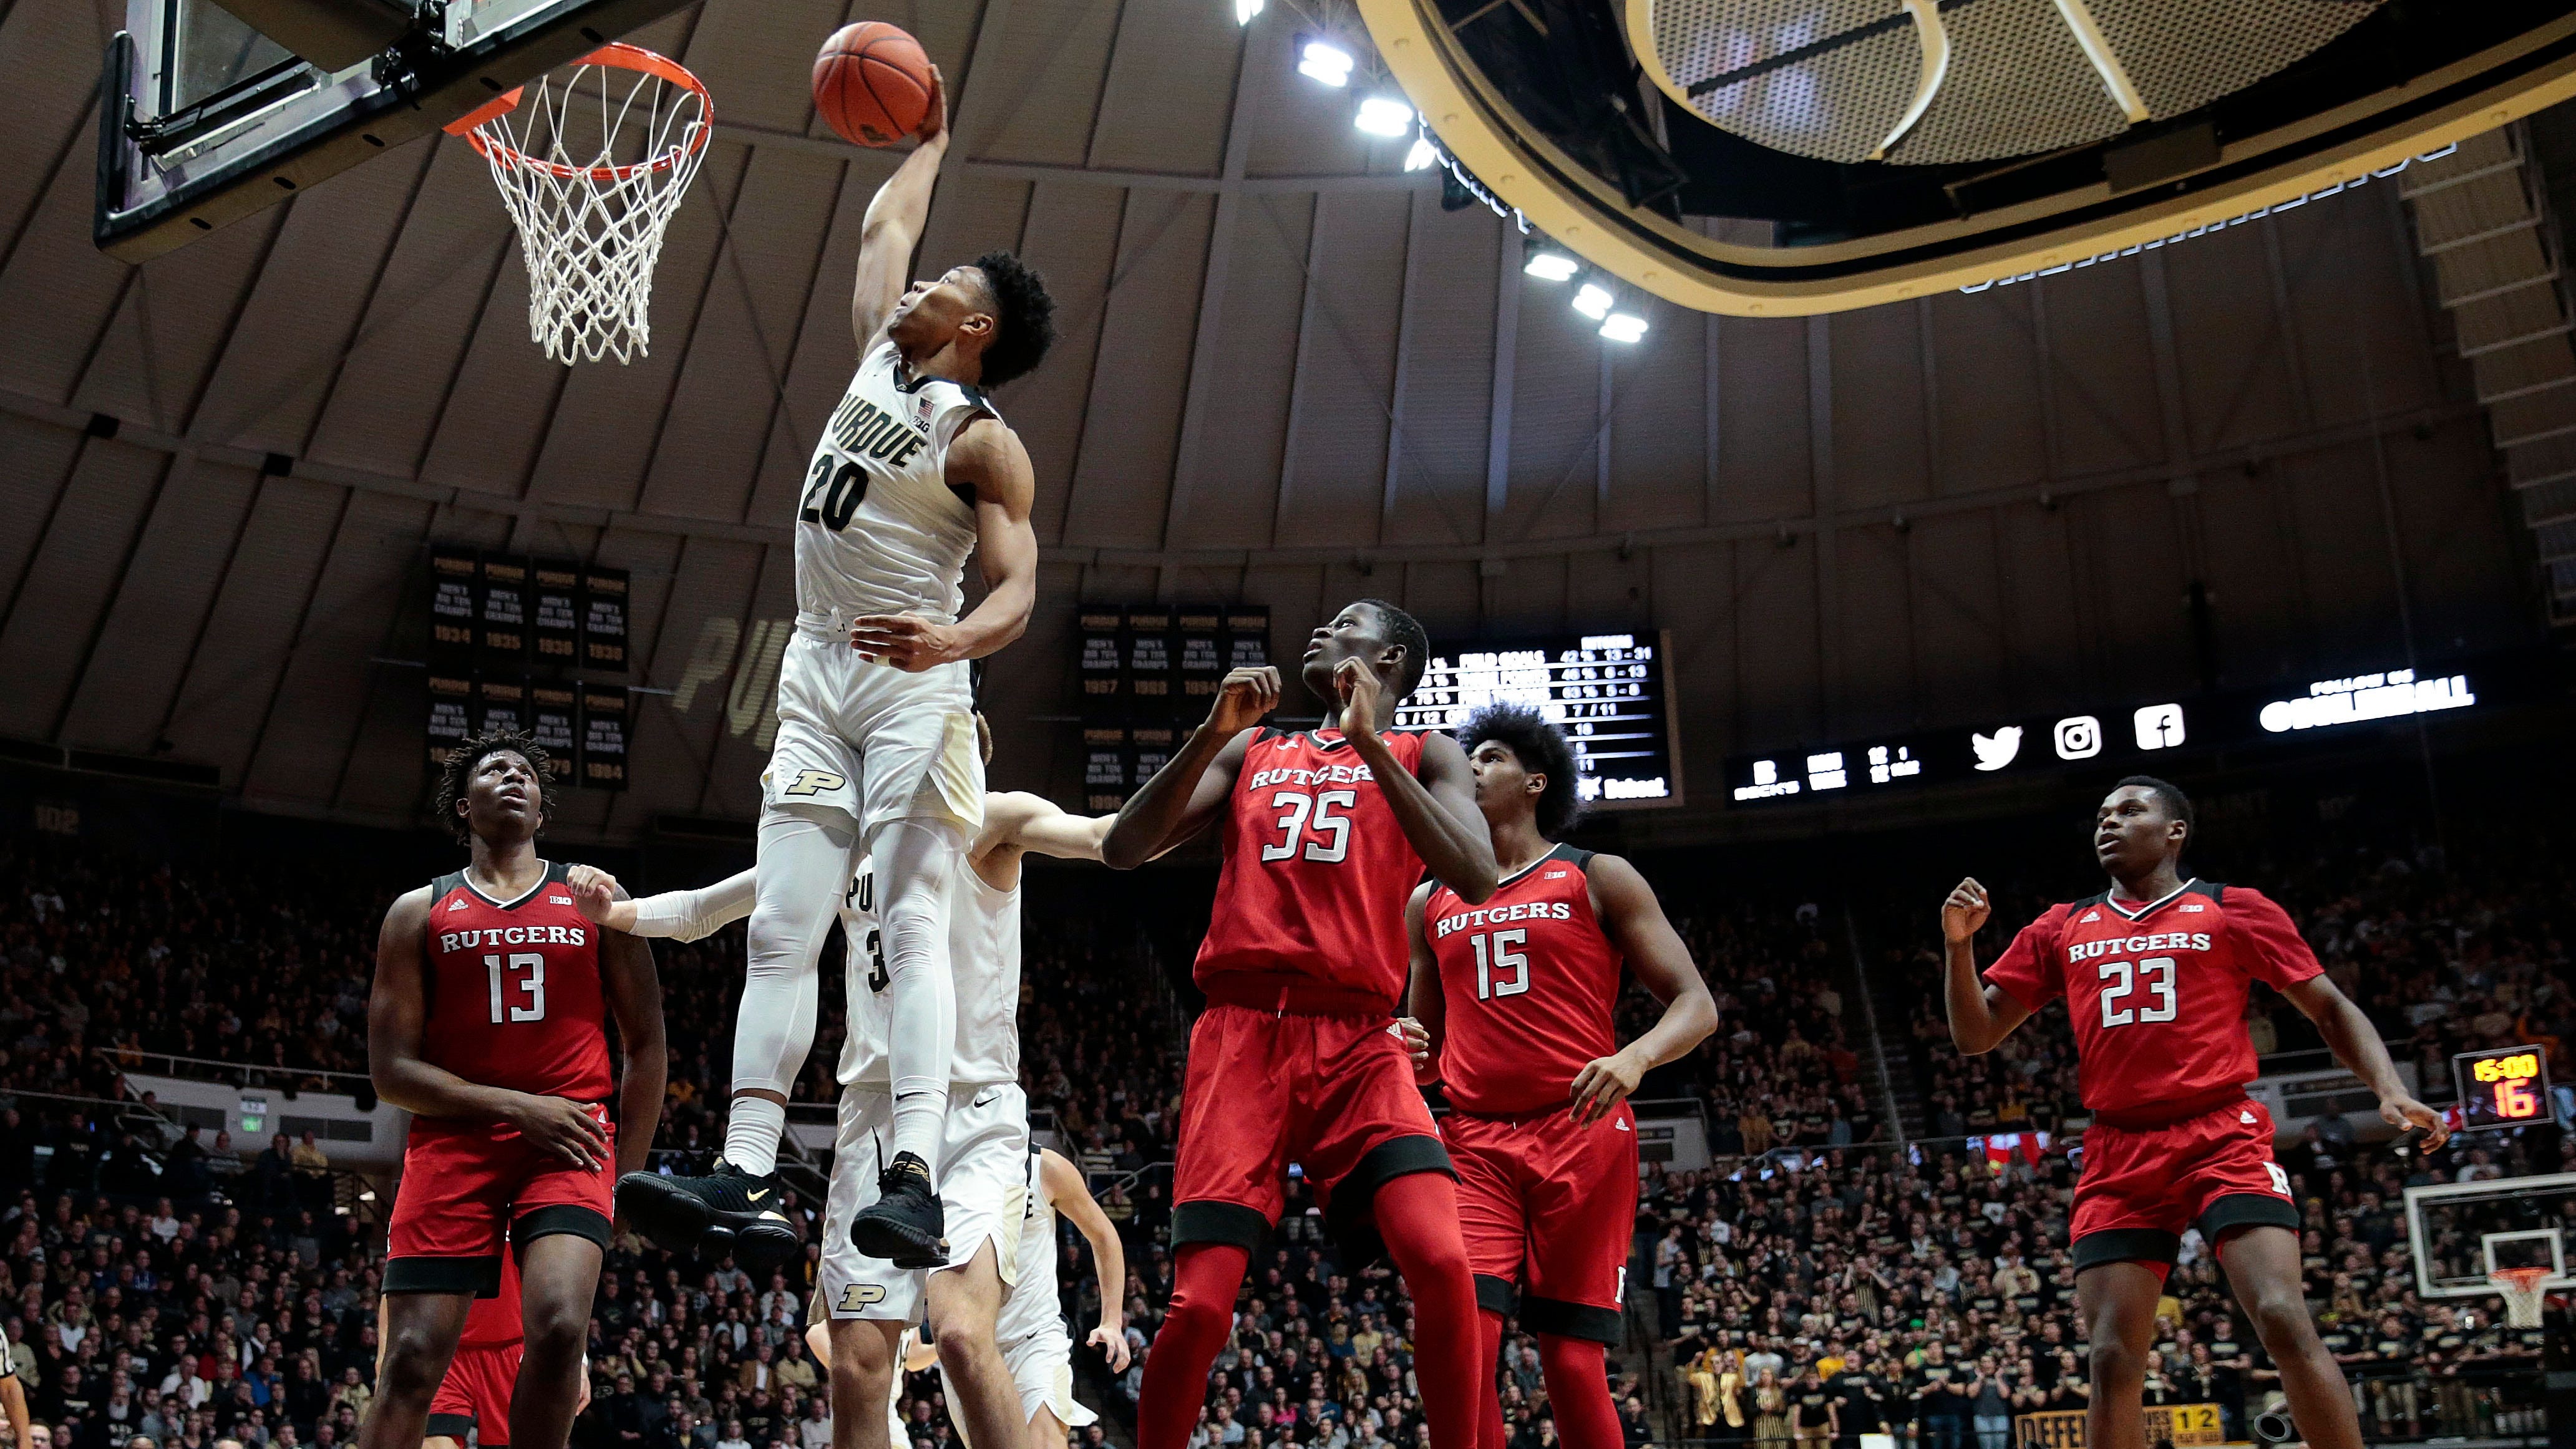 Purdue guard Nojel Eastern (20) dunks between Rutgers defenders Shaq Carter (13) and Issa Thiam (35) during the second half of an NCAA college basketball game in West Lafayette, Ind., Tuesday, Jan. 15, 2019. Purdue won 89-54.